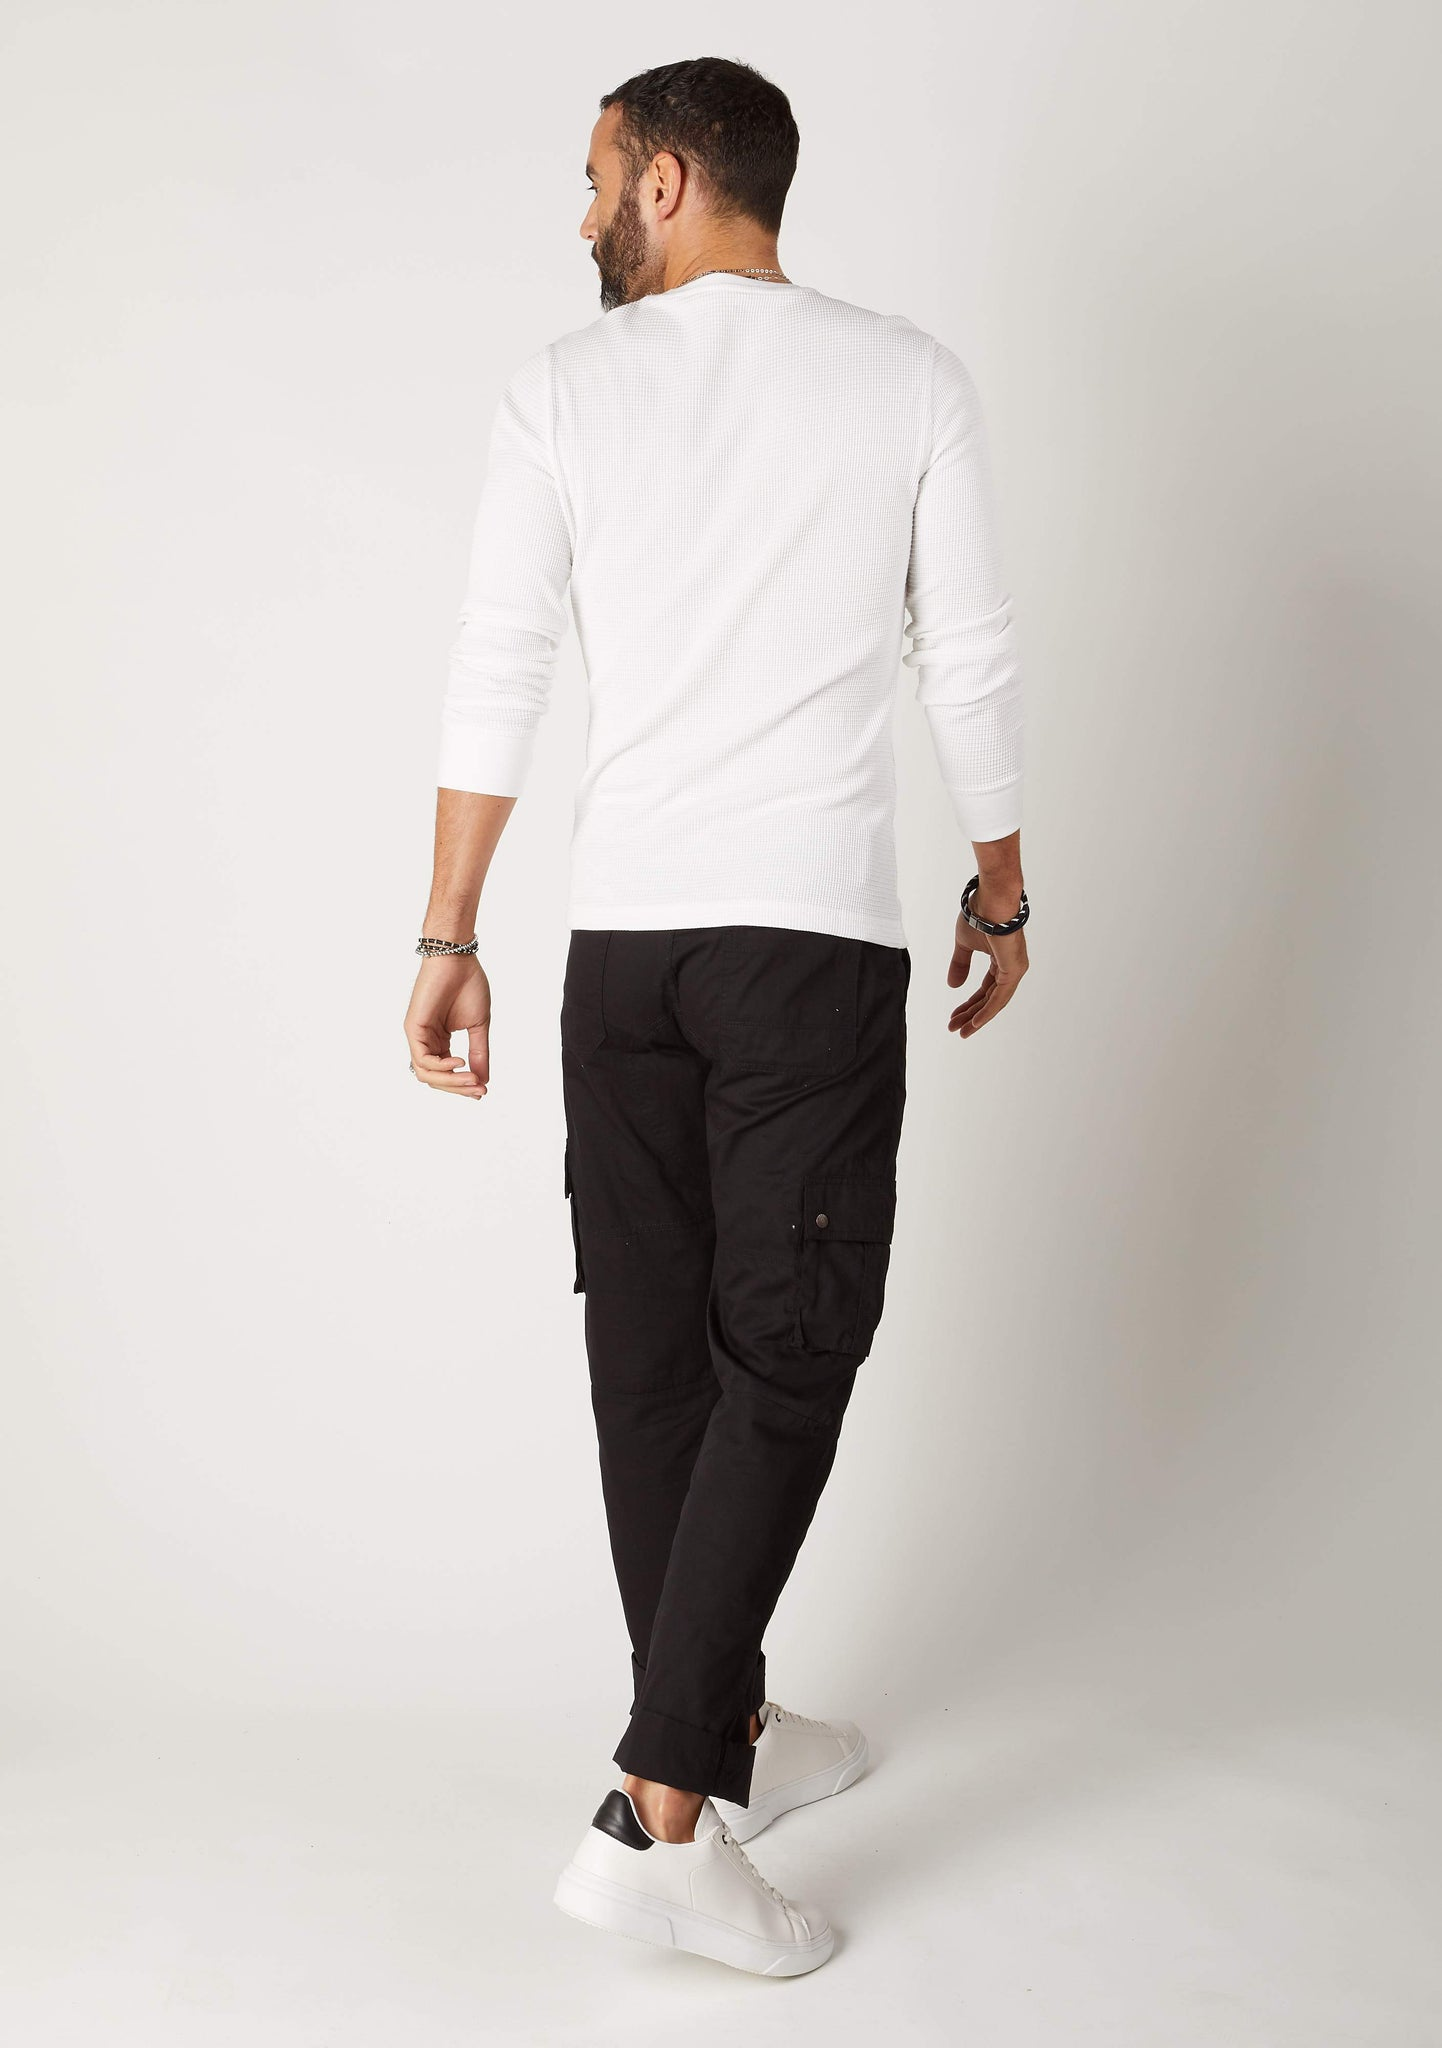 Rear full-length pose mens lightweight black cotton cargo pocket pants.